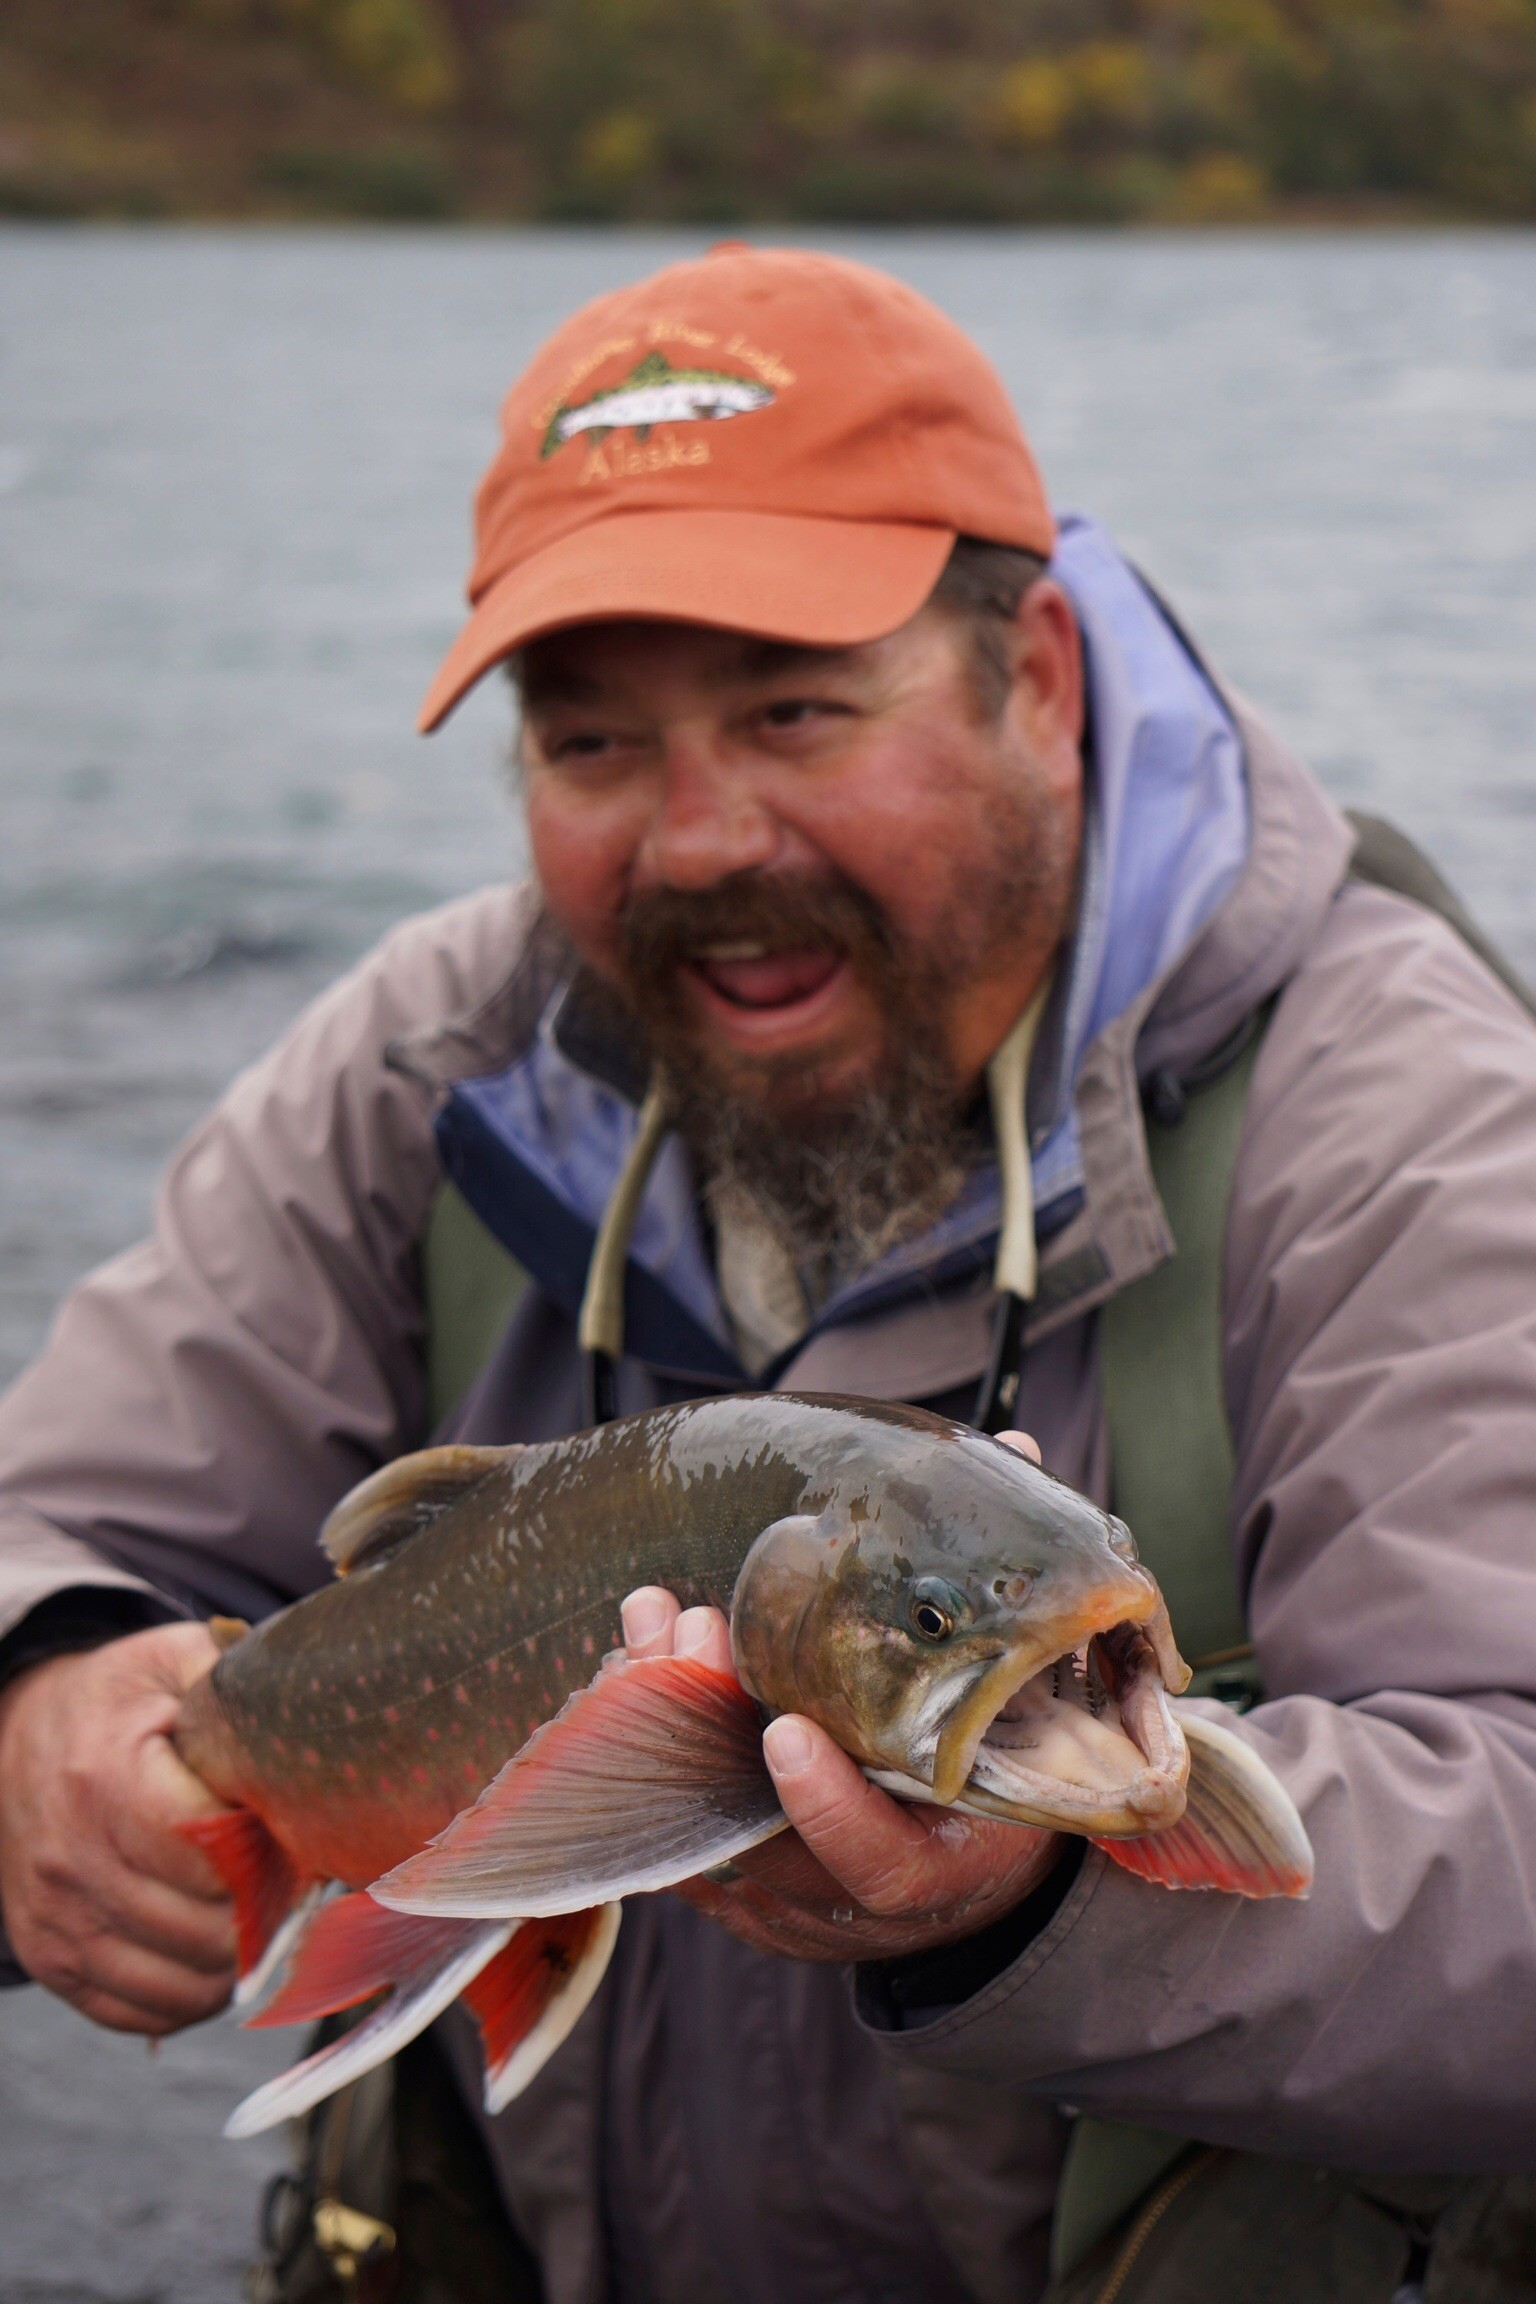 Saltery Lake Lodge: 6 Day Fishing & Lodging package